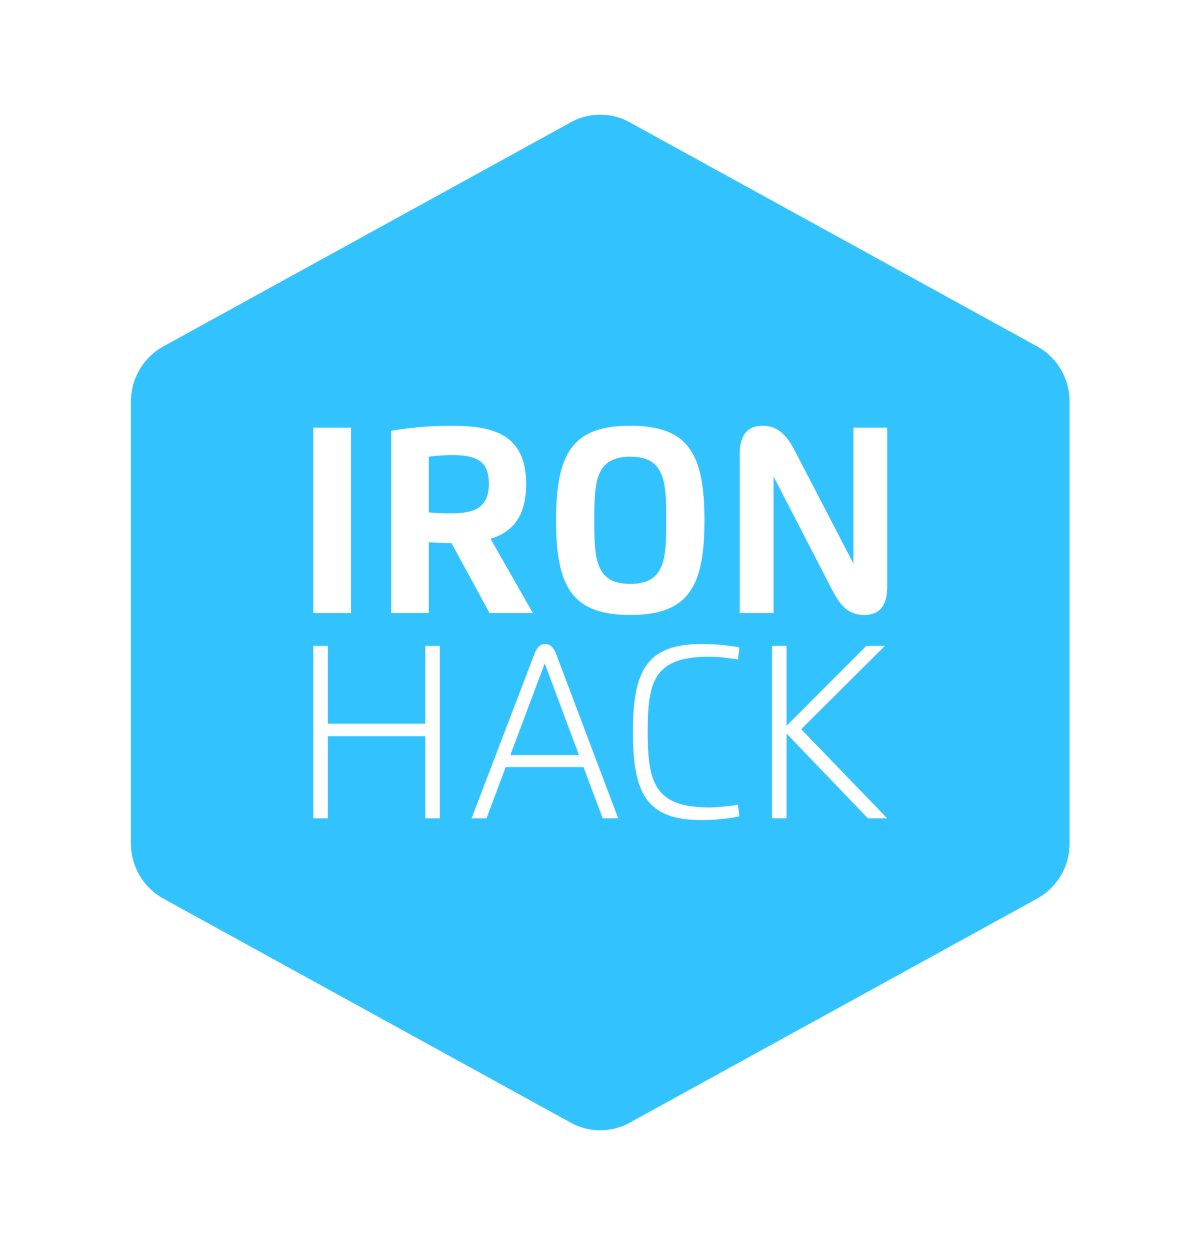 IronHack - Web Development Bootcamp & UX/UI Design Bootcamp